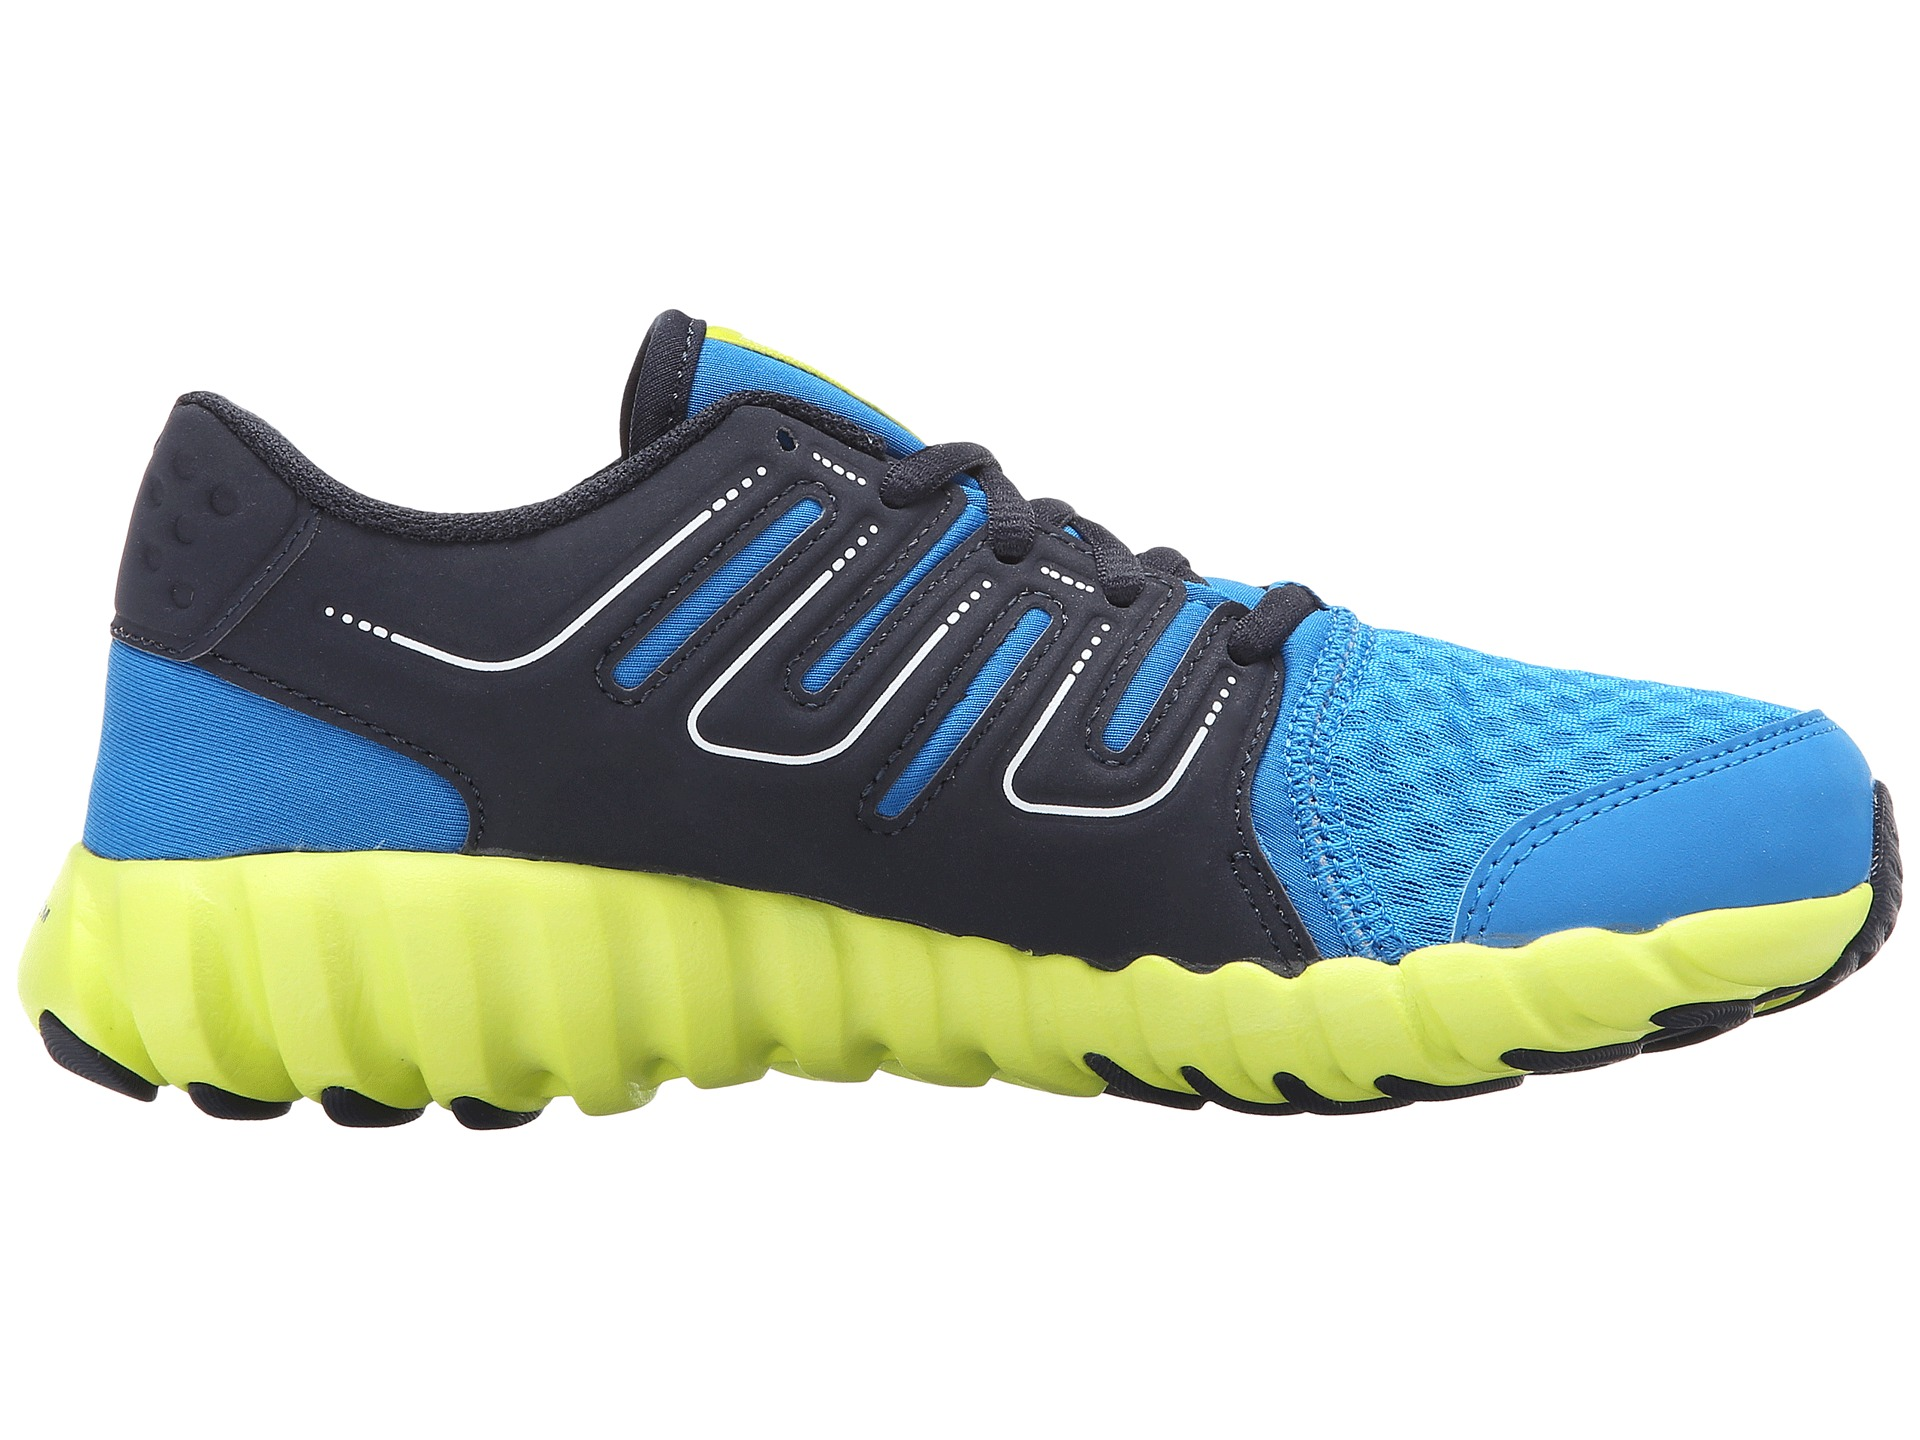 the gallery for gt nike tennis shoes neon